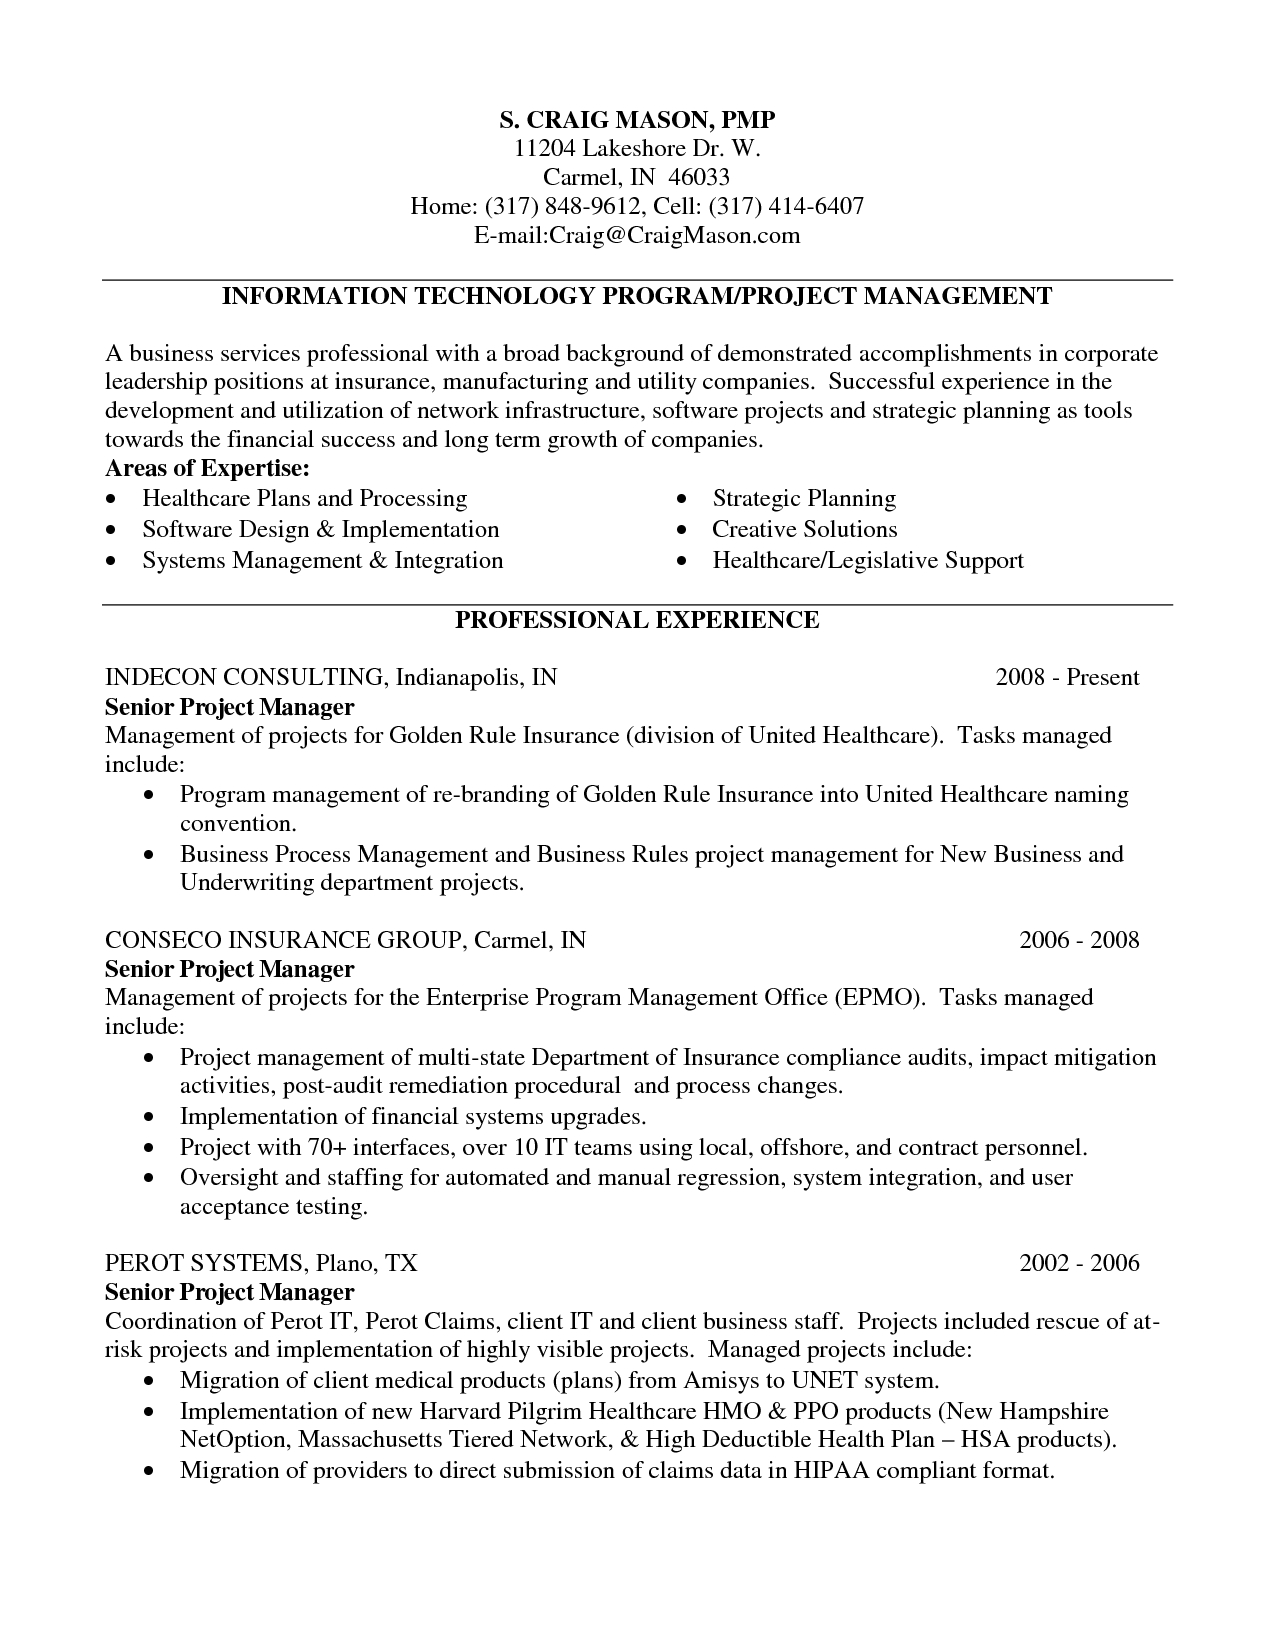 Cover Letter Template Healthcare - software Project Manager Resume software Project Manager Resume Mark